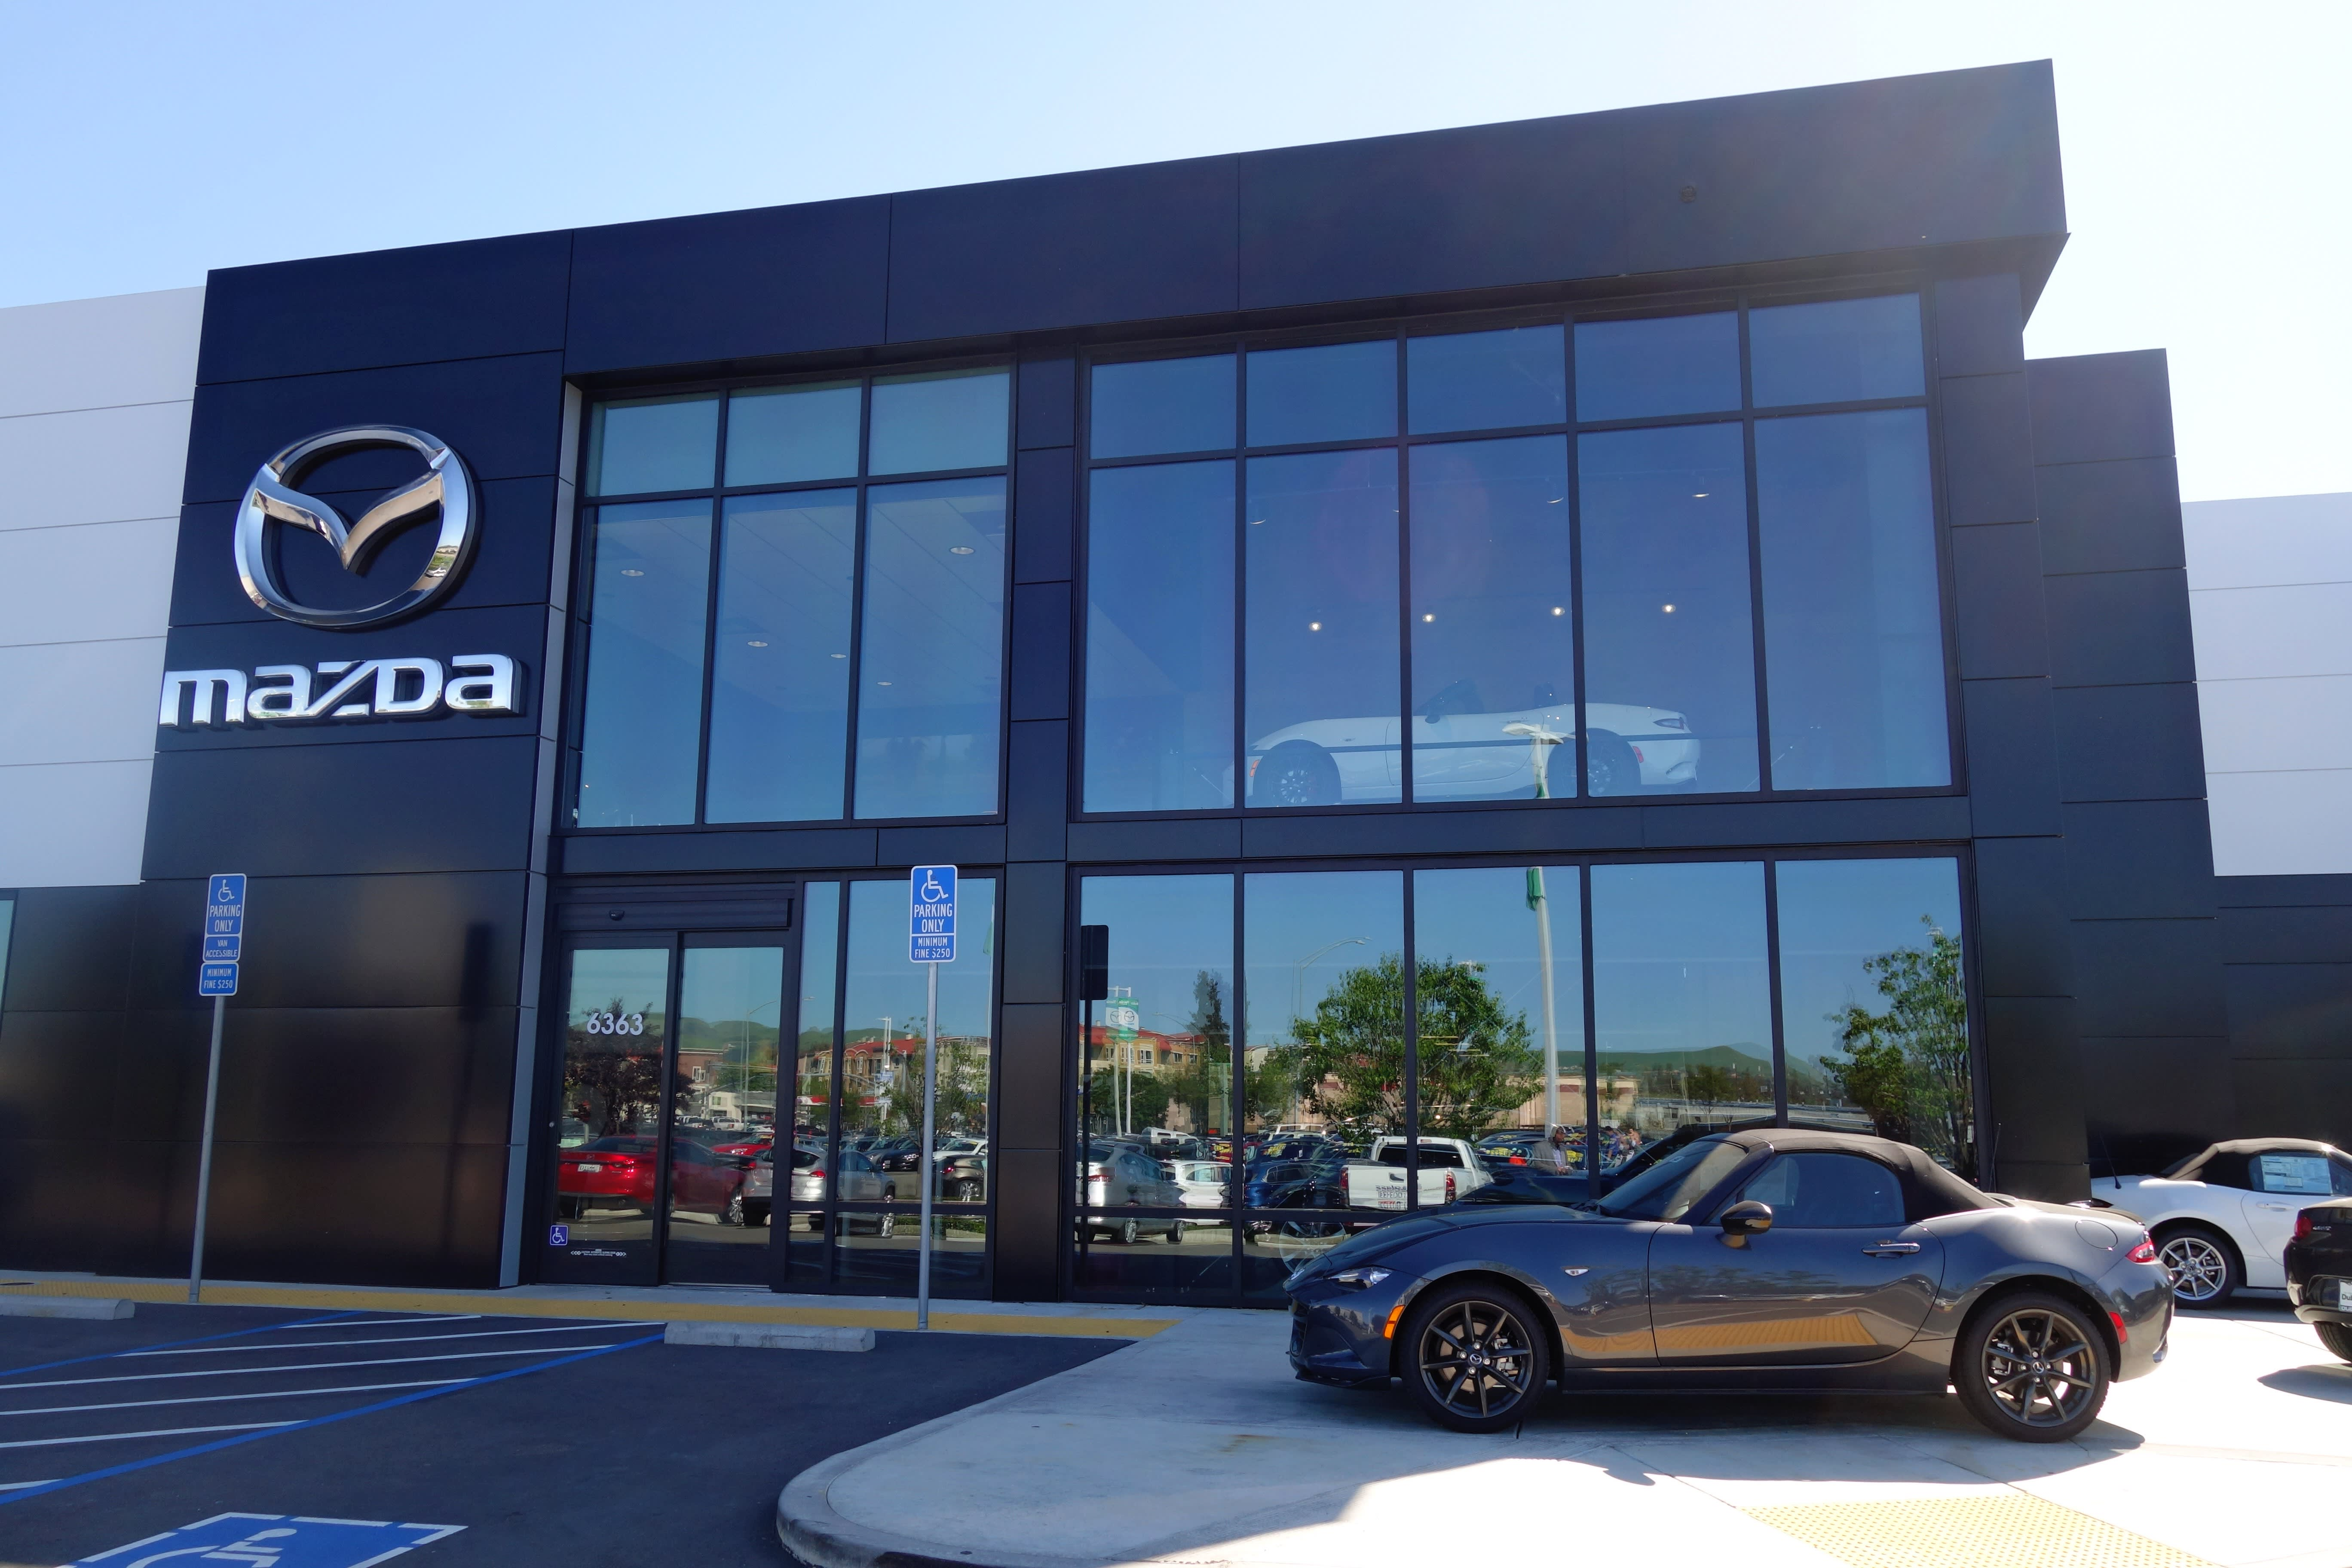 owners mazda lethbridge clp a first locations time program milestone owner milestonemazda dealership alberta